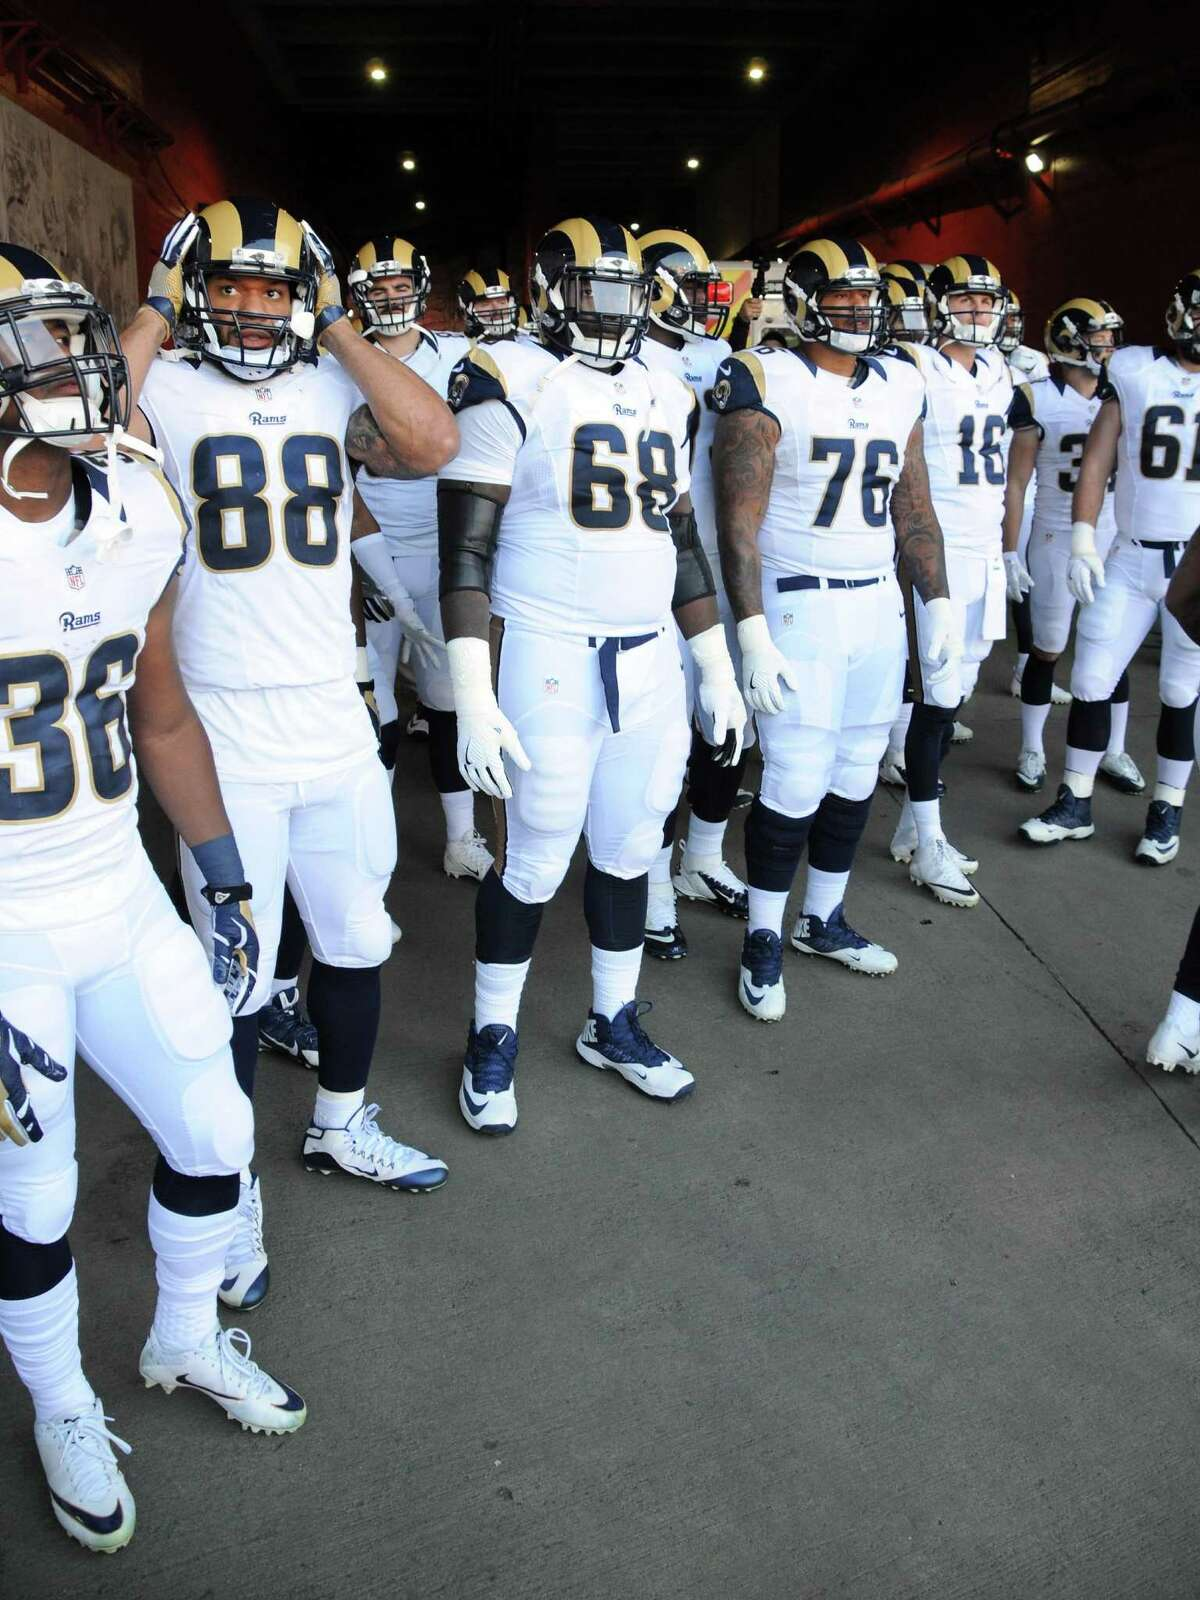 Members of the Los Angeles Rams offense in the Memorial Coliseum tunnel before heading to the field before a game against the Arizona Cardinals played at the Los Angeles Memorial Coliseum in Los Angeles on Jan. 1, 2017.